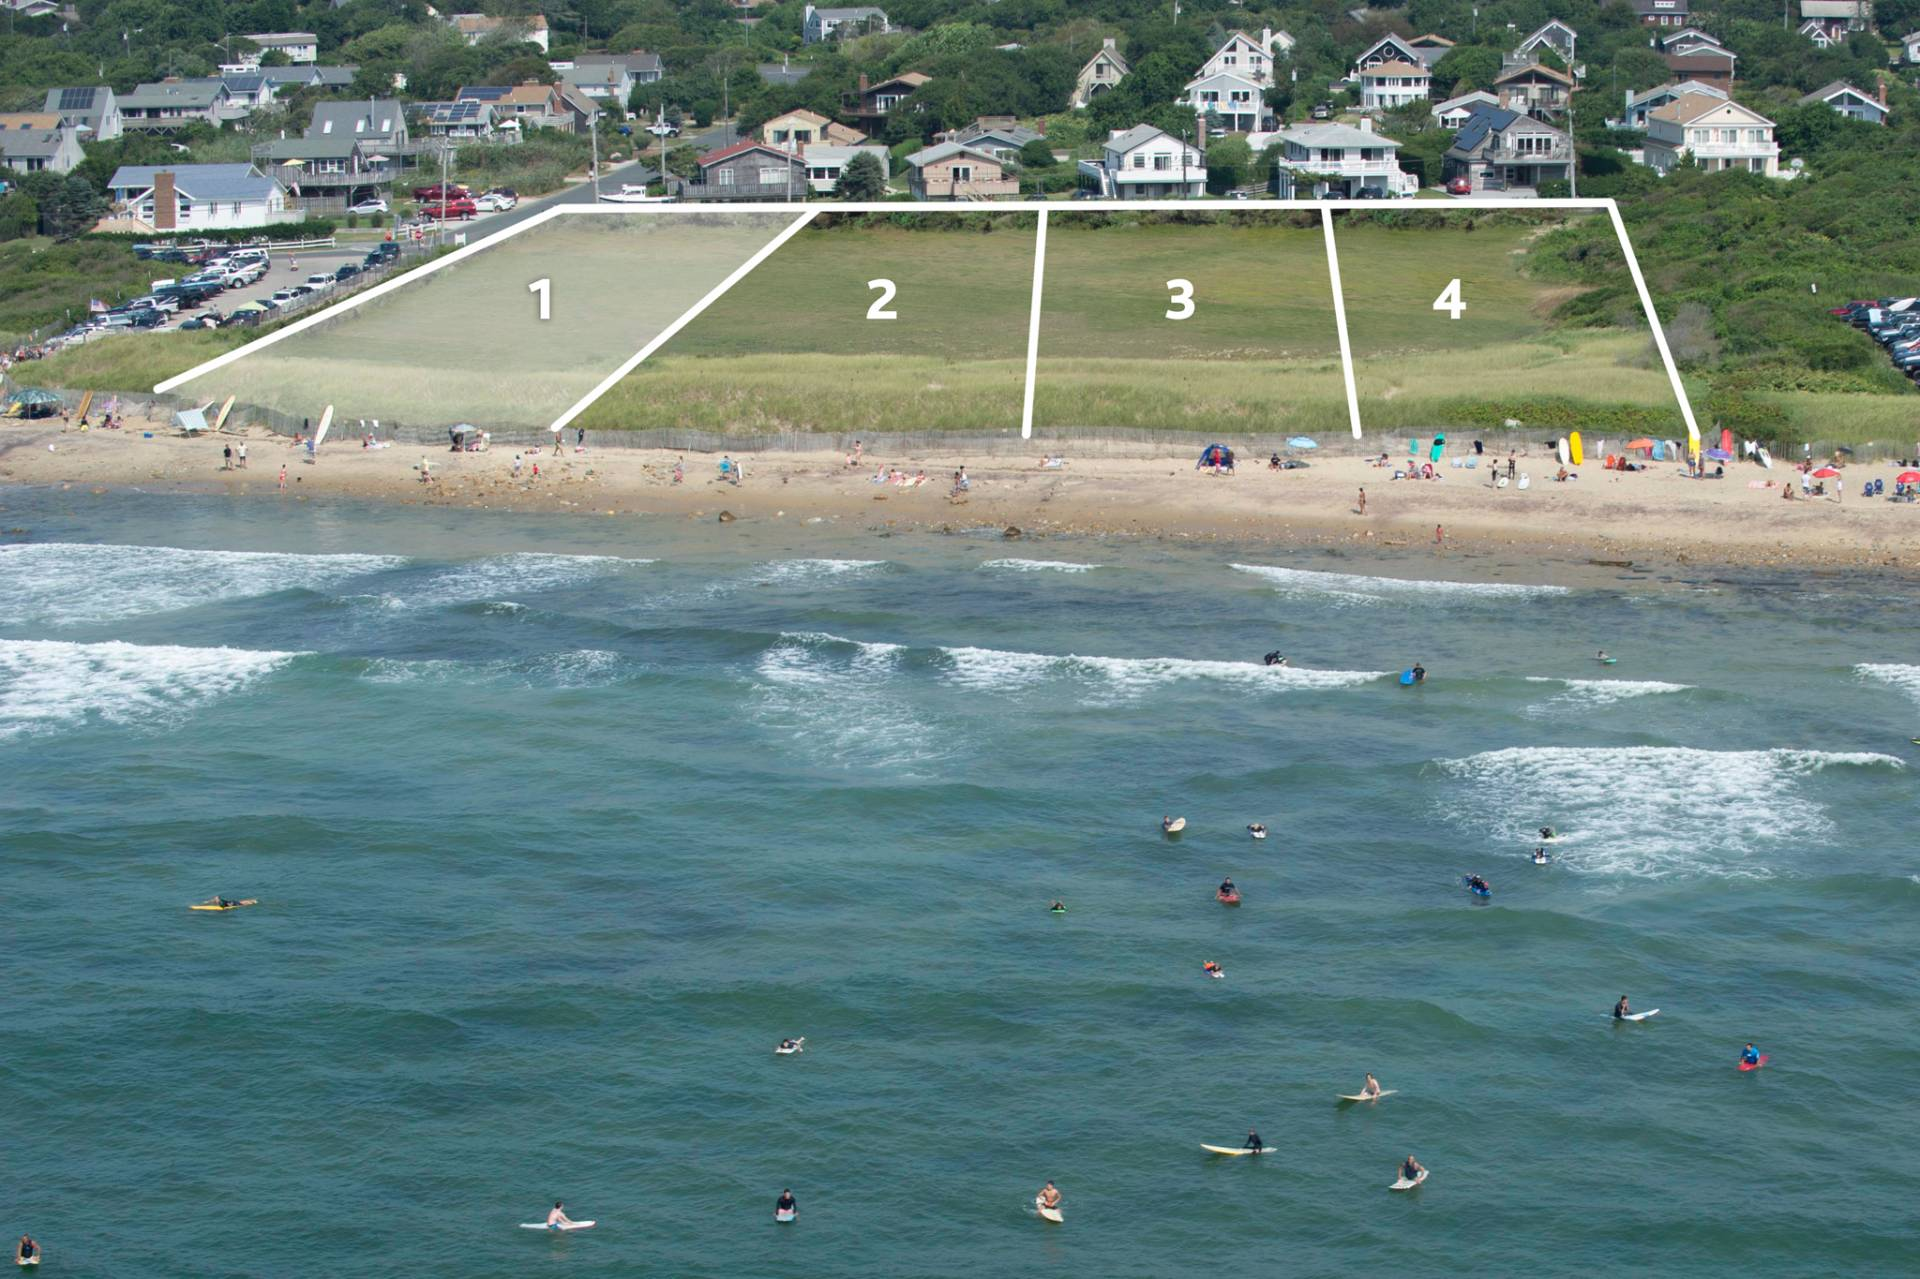 Land for Sale at Montauk: Ditch Plains Beach Home Site 40 Deforest Road, Montauk, New York